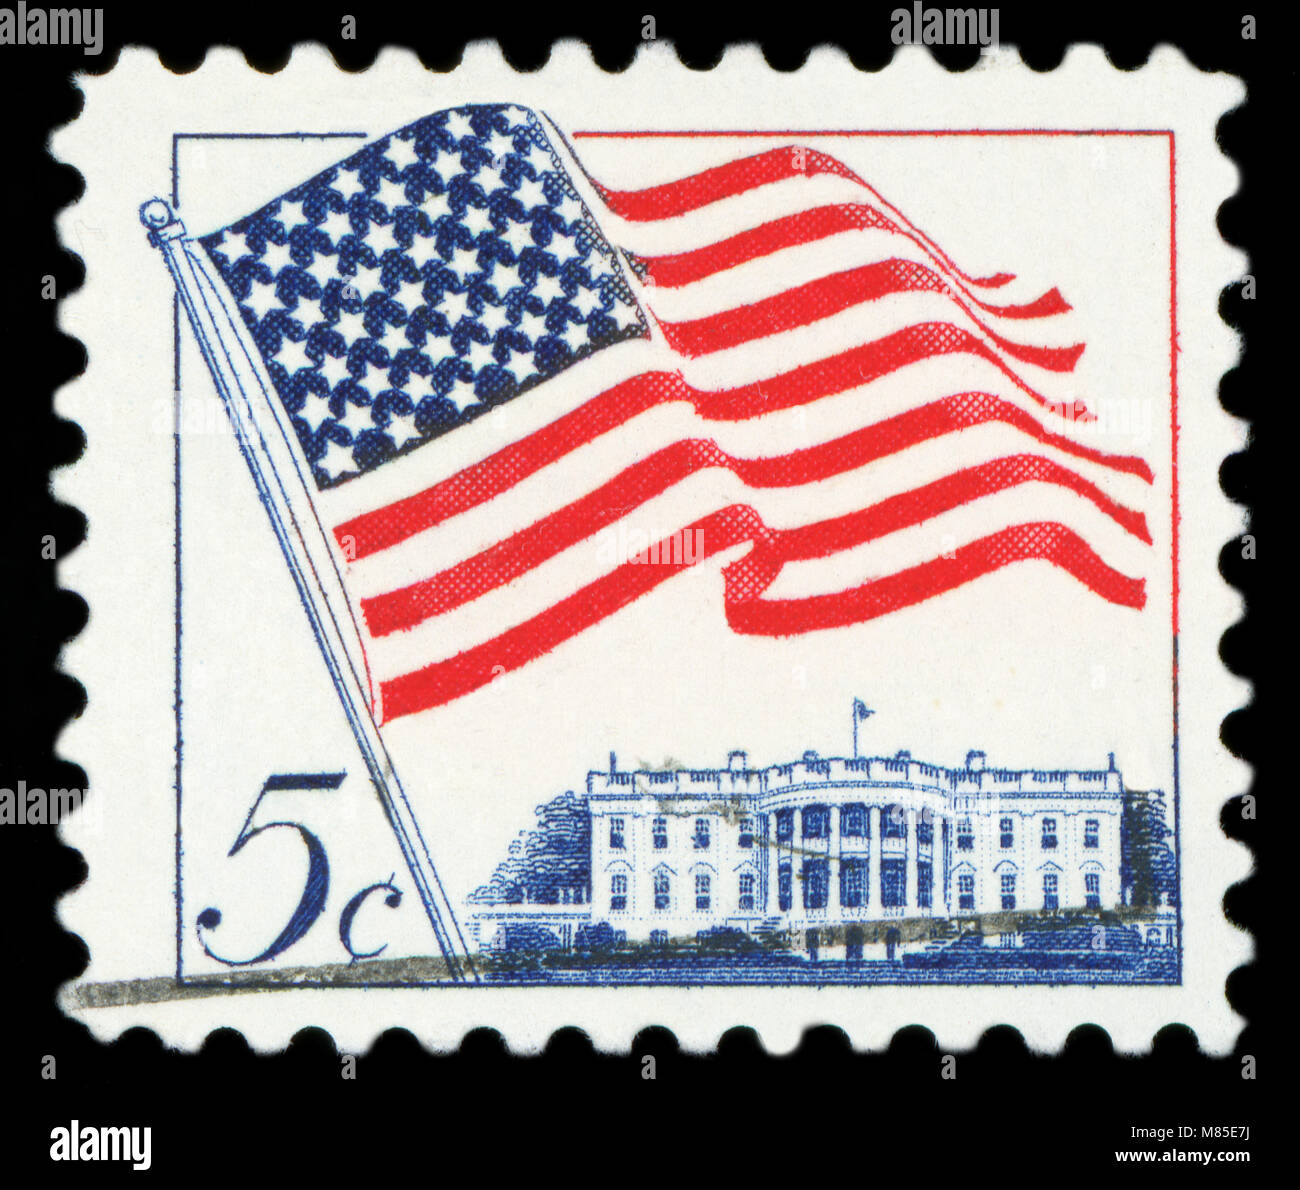 815abefd6f6c UNITED STATES OF AMERICA - CIRCA 1962  A used postage stamp from the USA  depicting an illustration of the American flag and White House in Washington